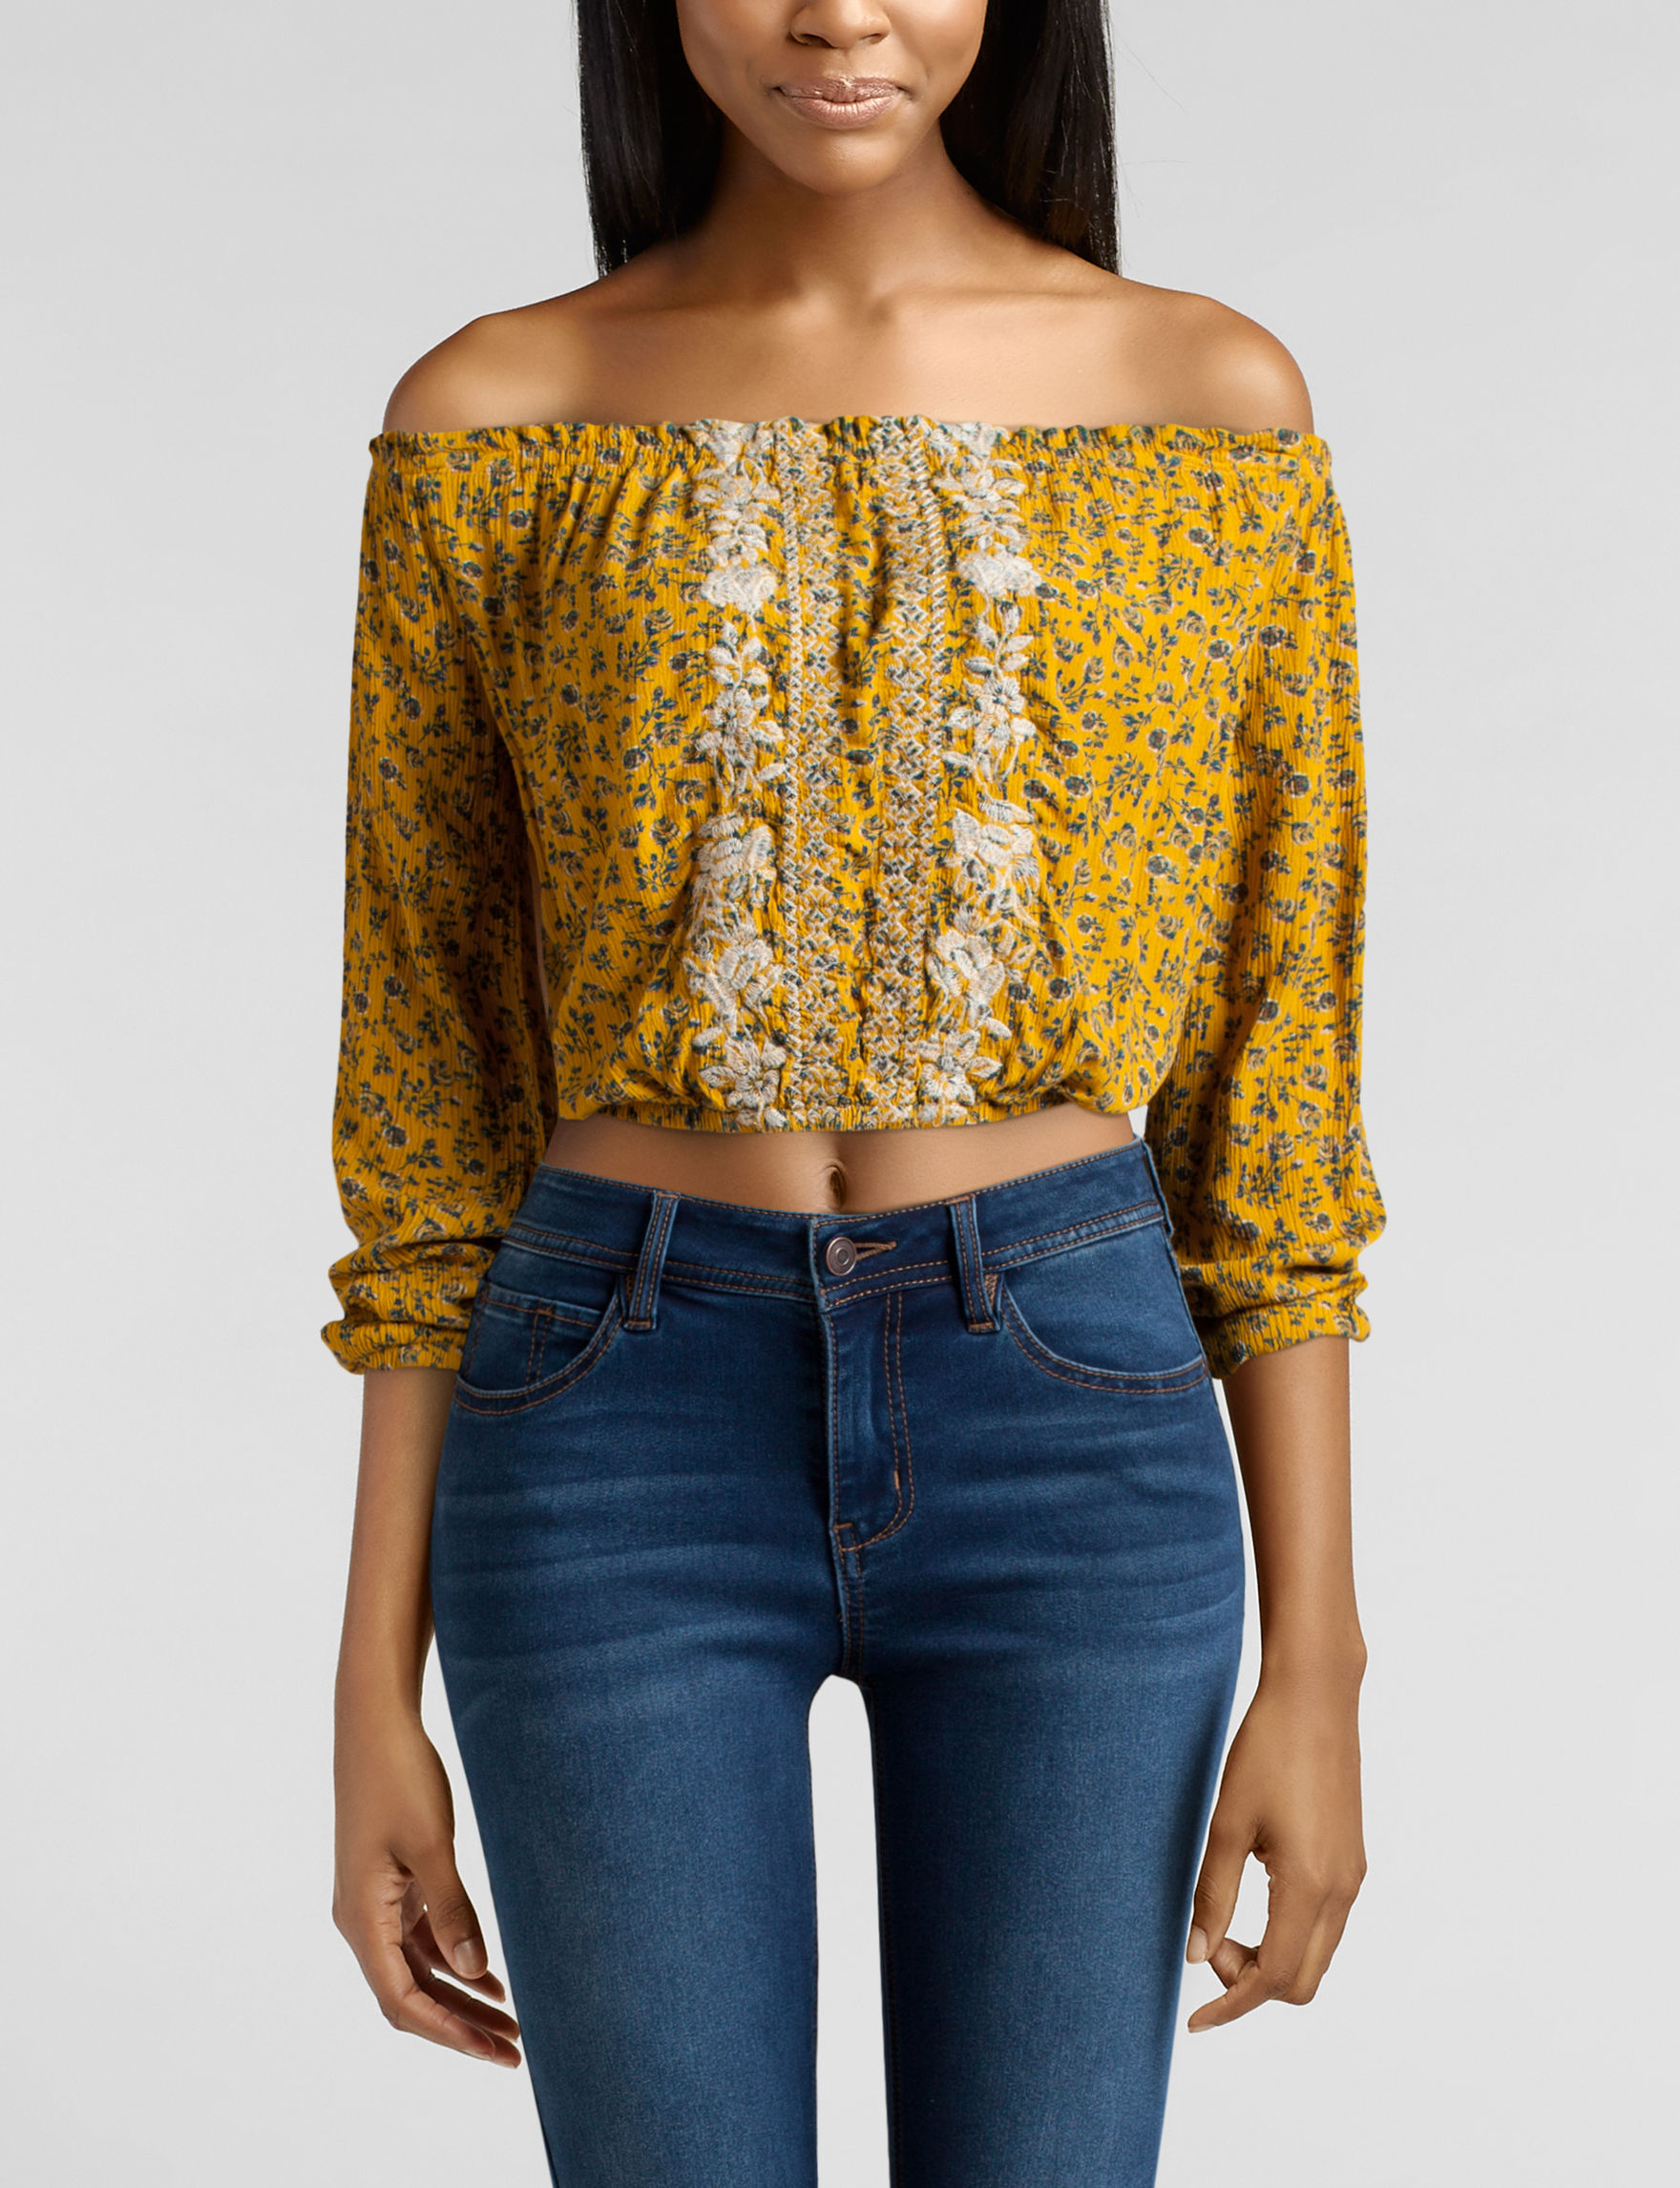 Jolt Yellow Shirts & Blouses